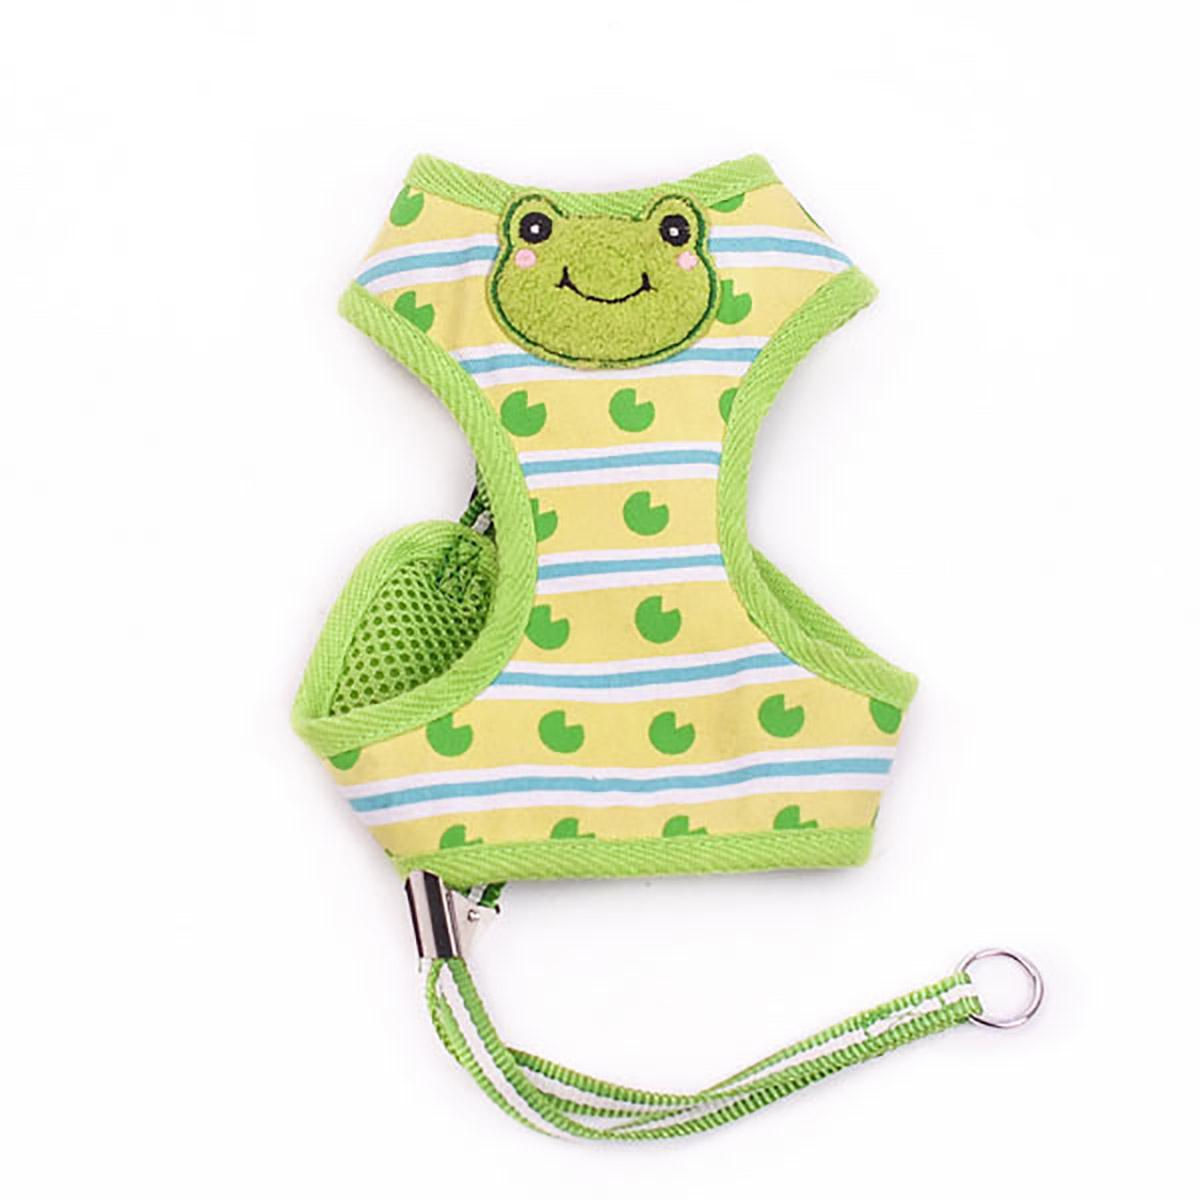 EasyGo Frog Dog Harness by Dogo - Green